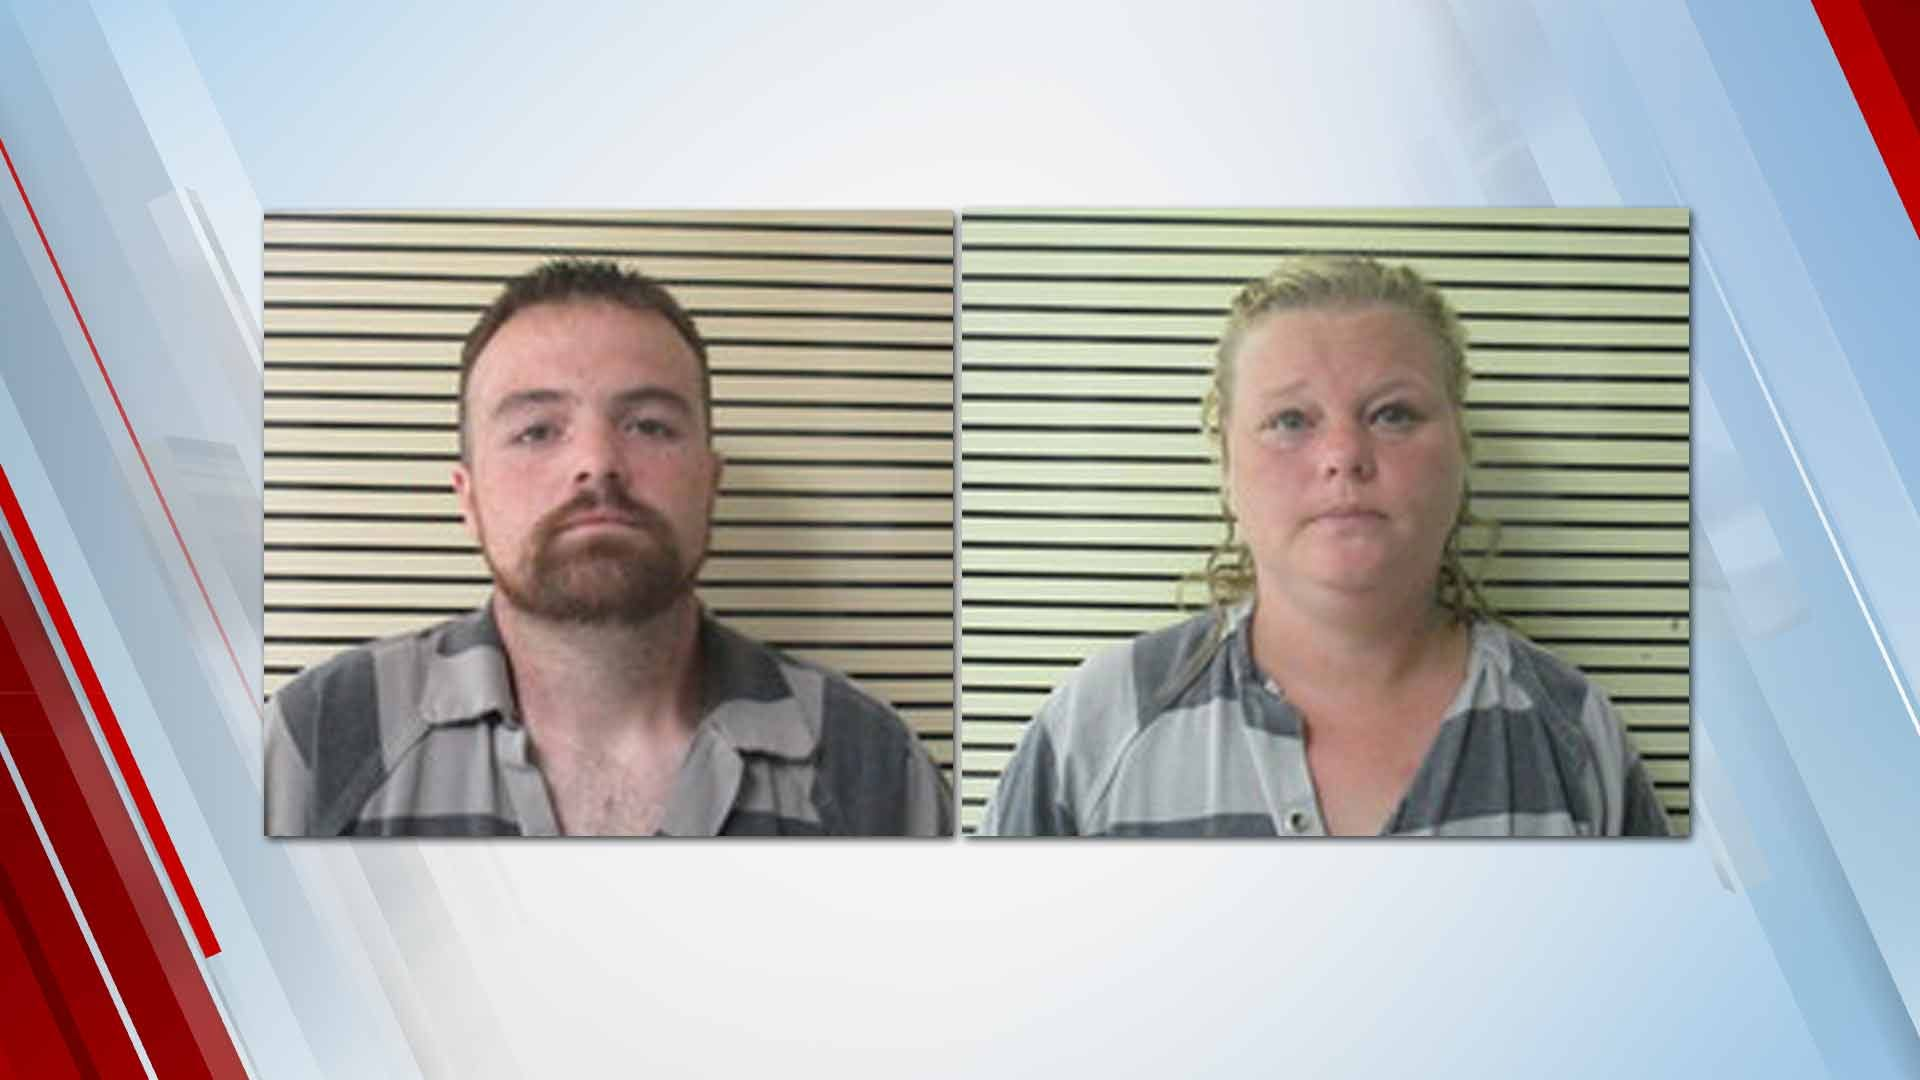 Wagoner Parents Charged With Murder In Drowning Death Of Their 4-Year-Old Son